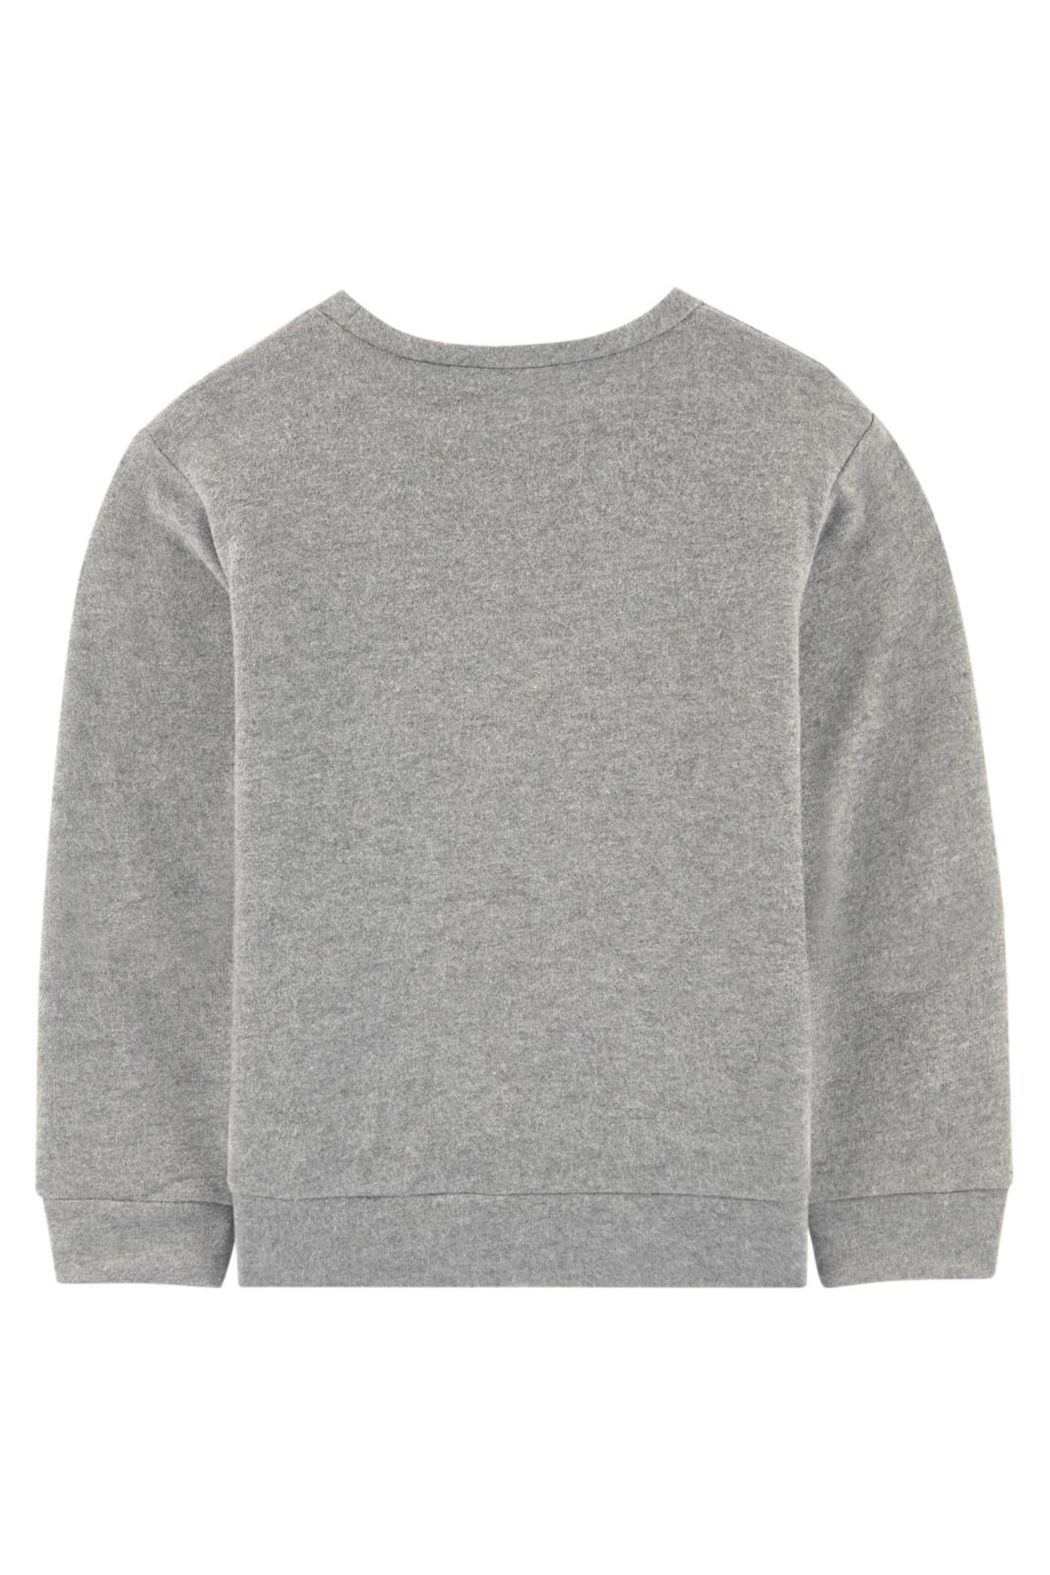 Mayoral Girly Patched Sweatshirt - Front Full Image